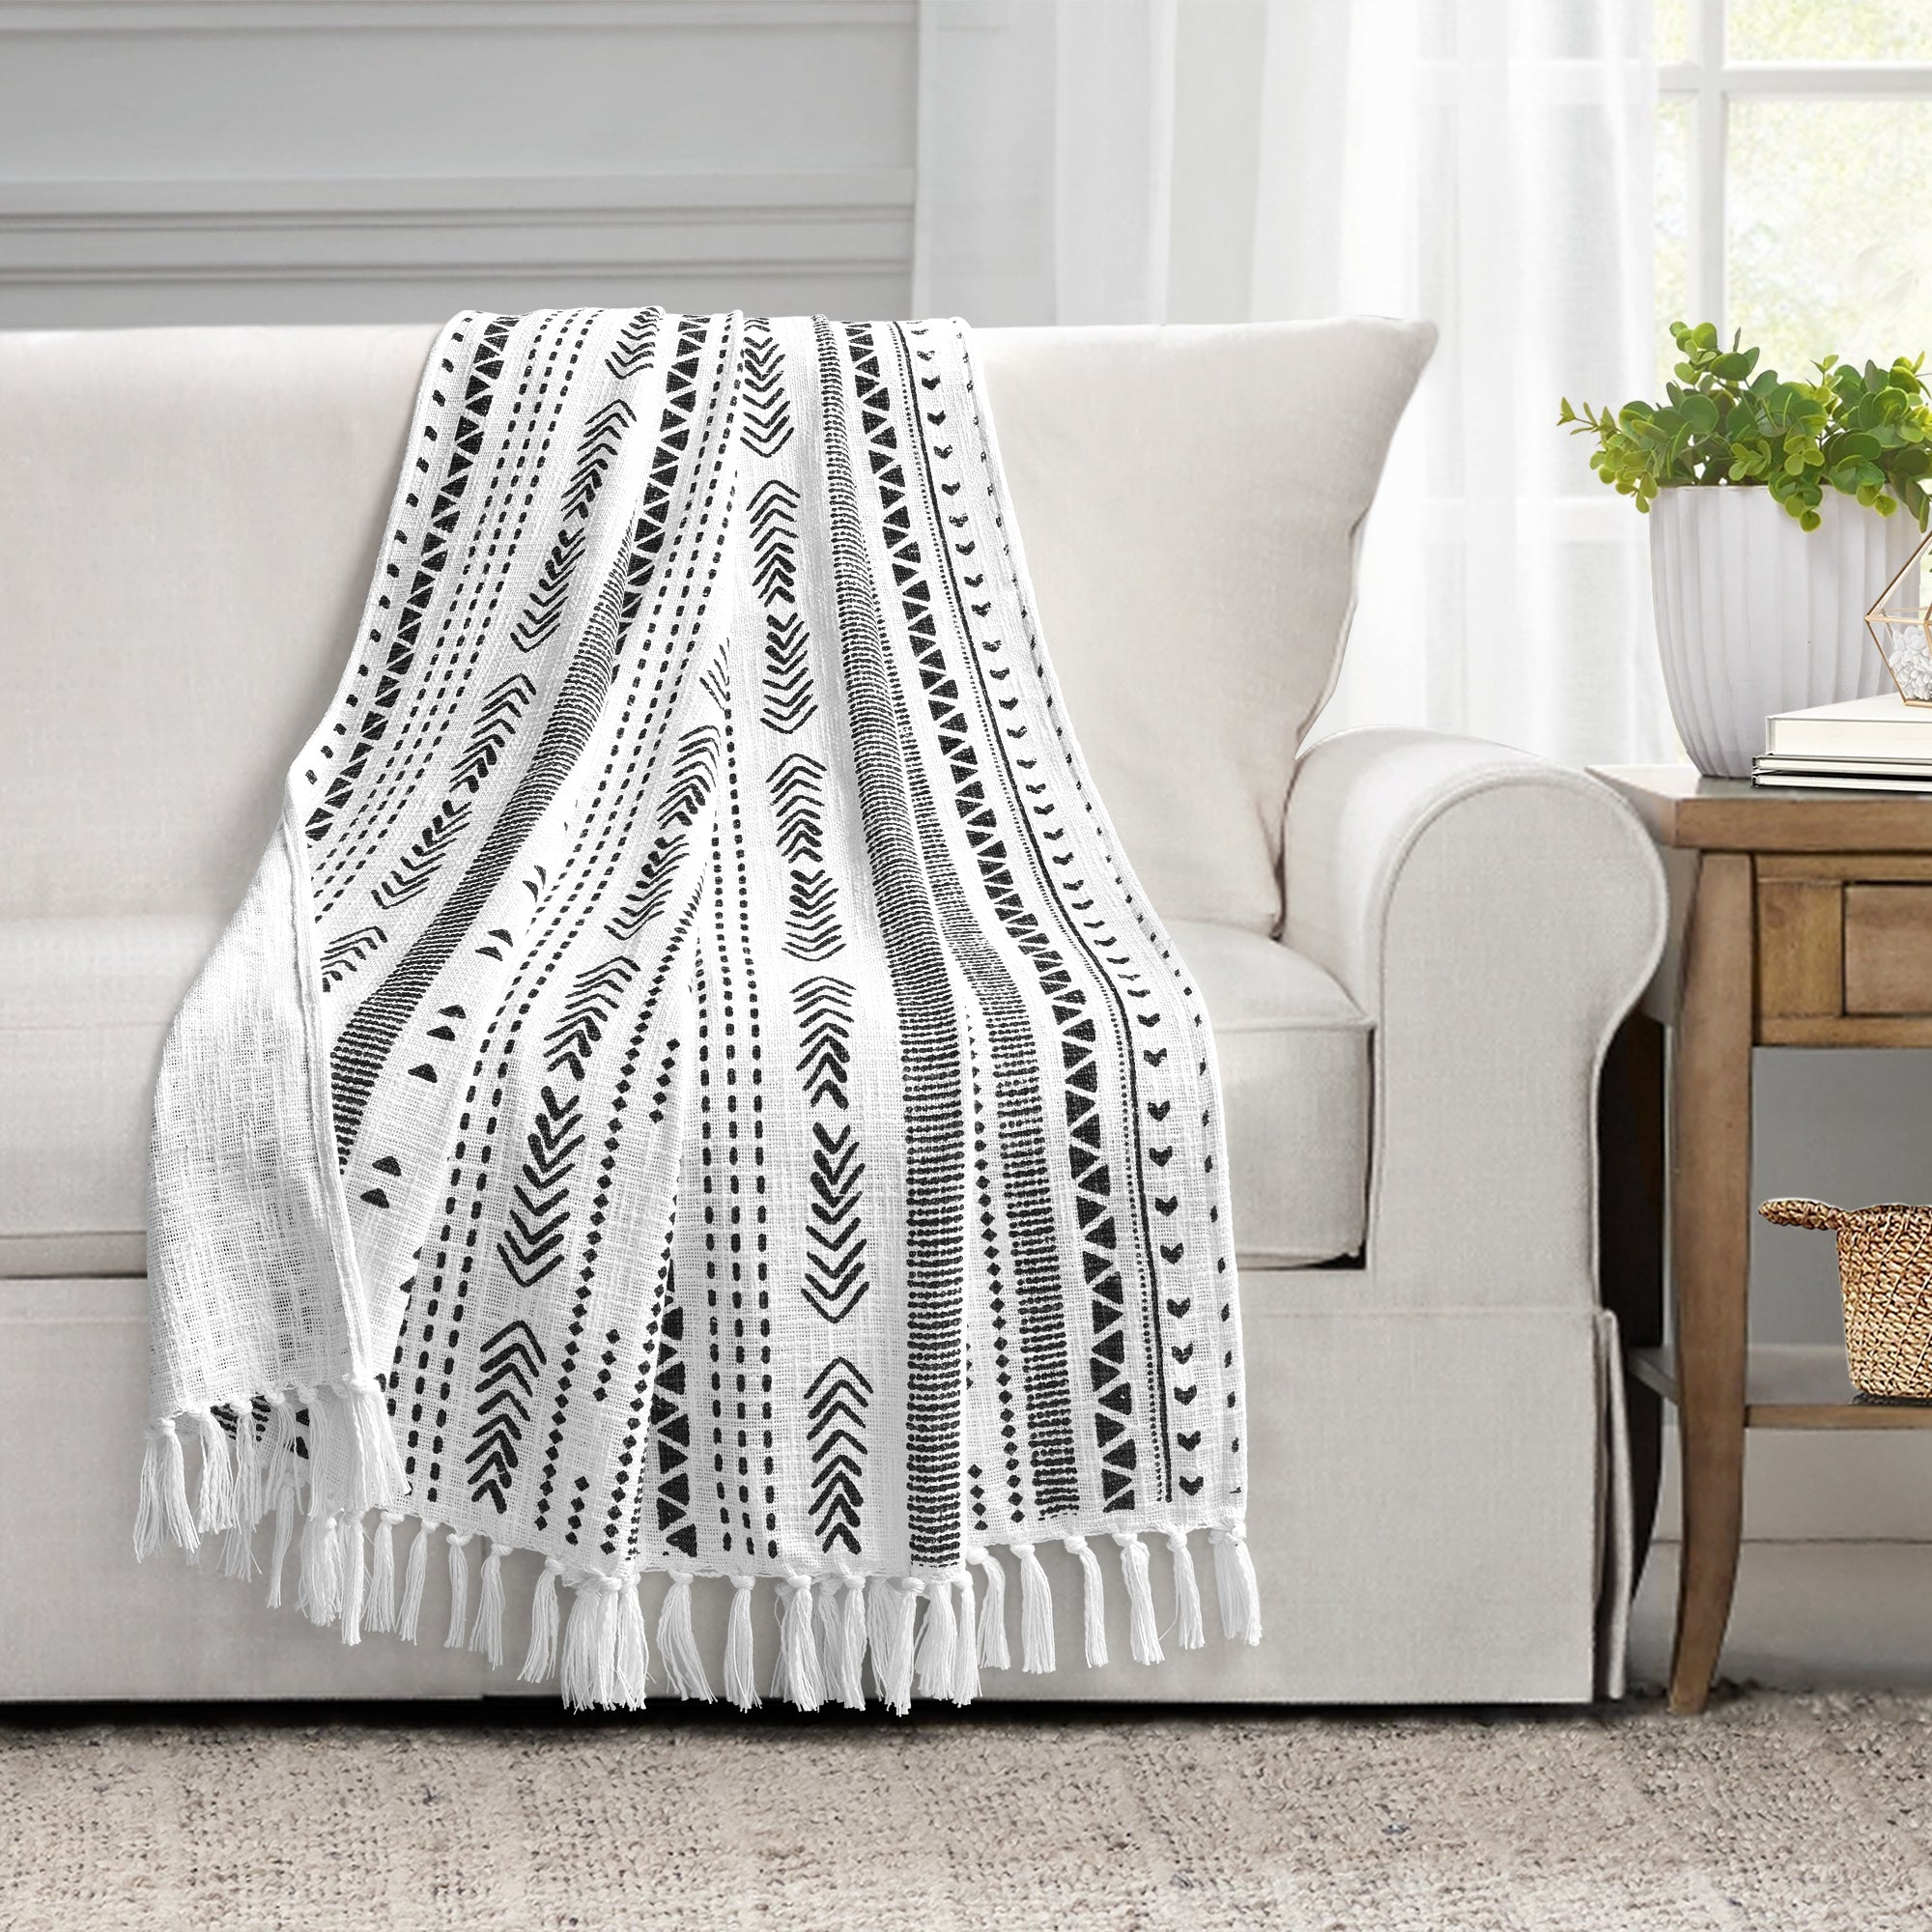 COMING SOON: Hygge Stripe Cotton Slub Tassel Fringe Throw